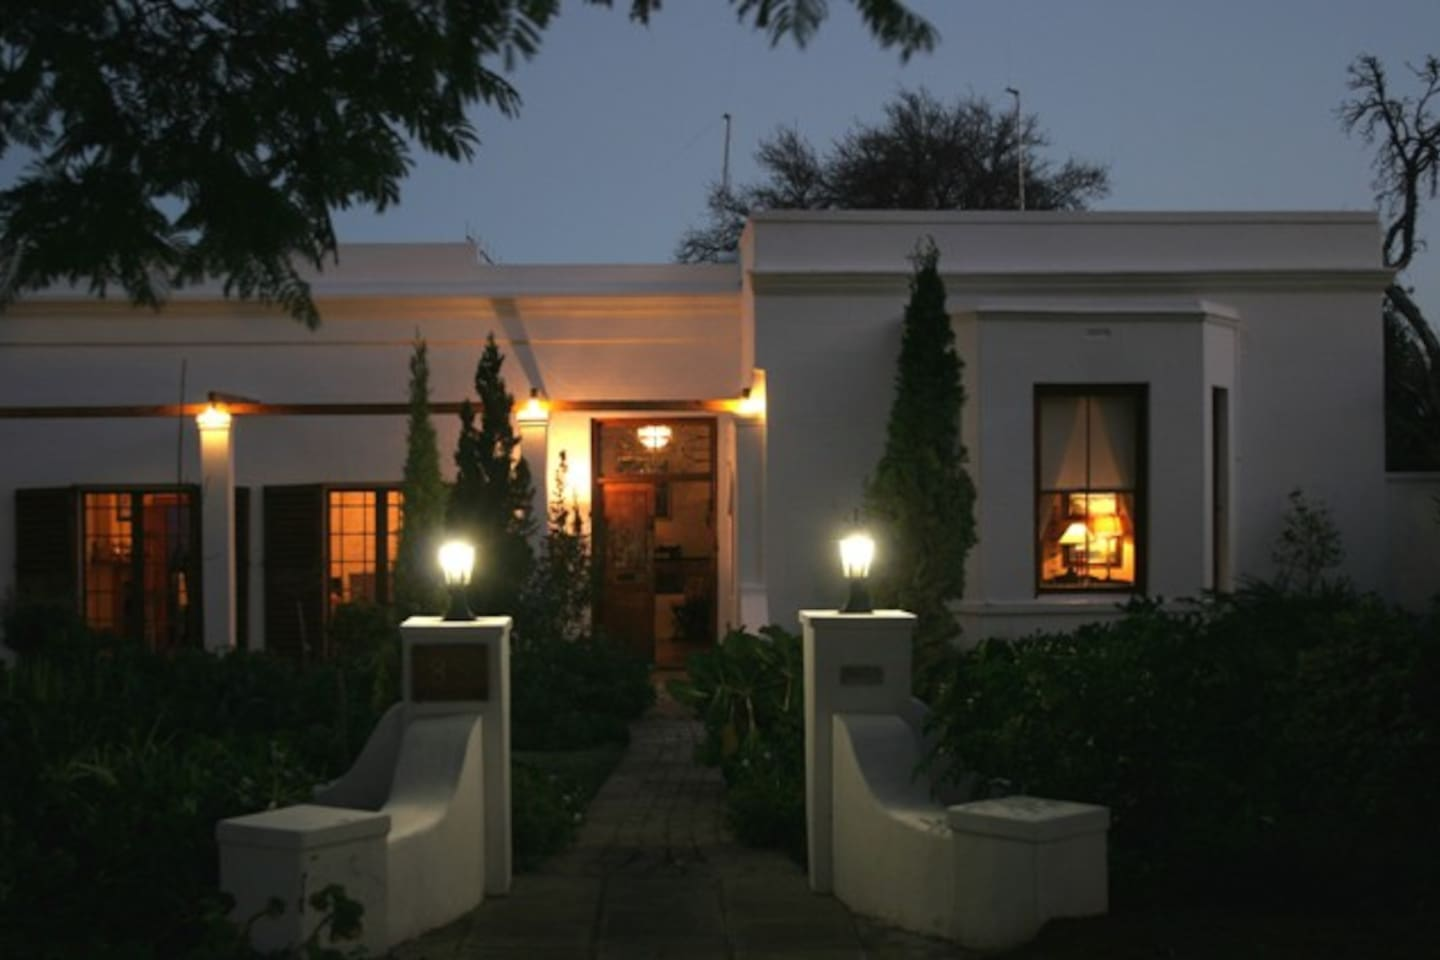 Evening view of the front of the guest house